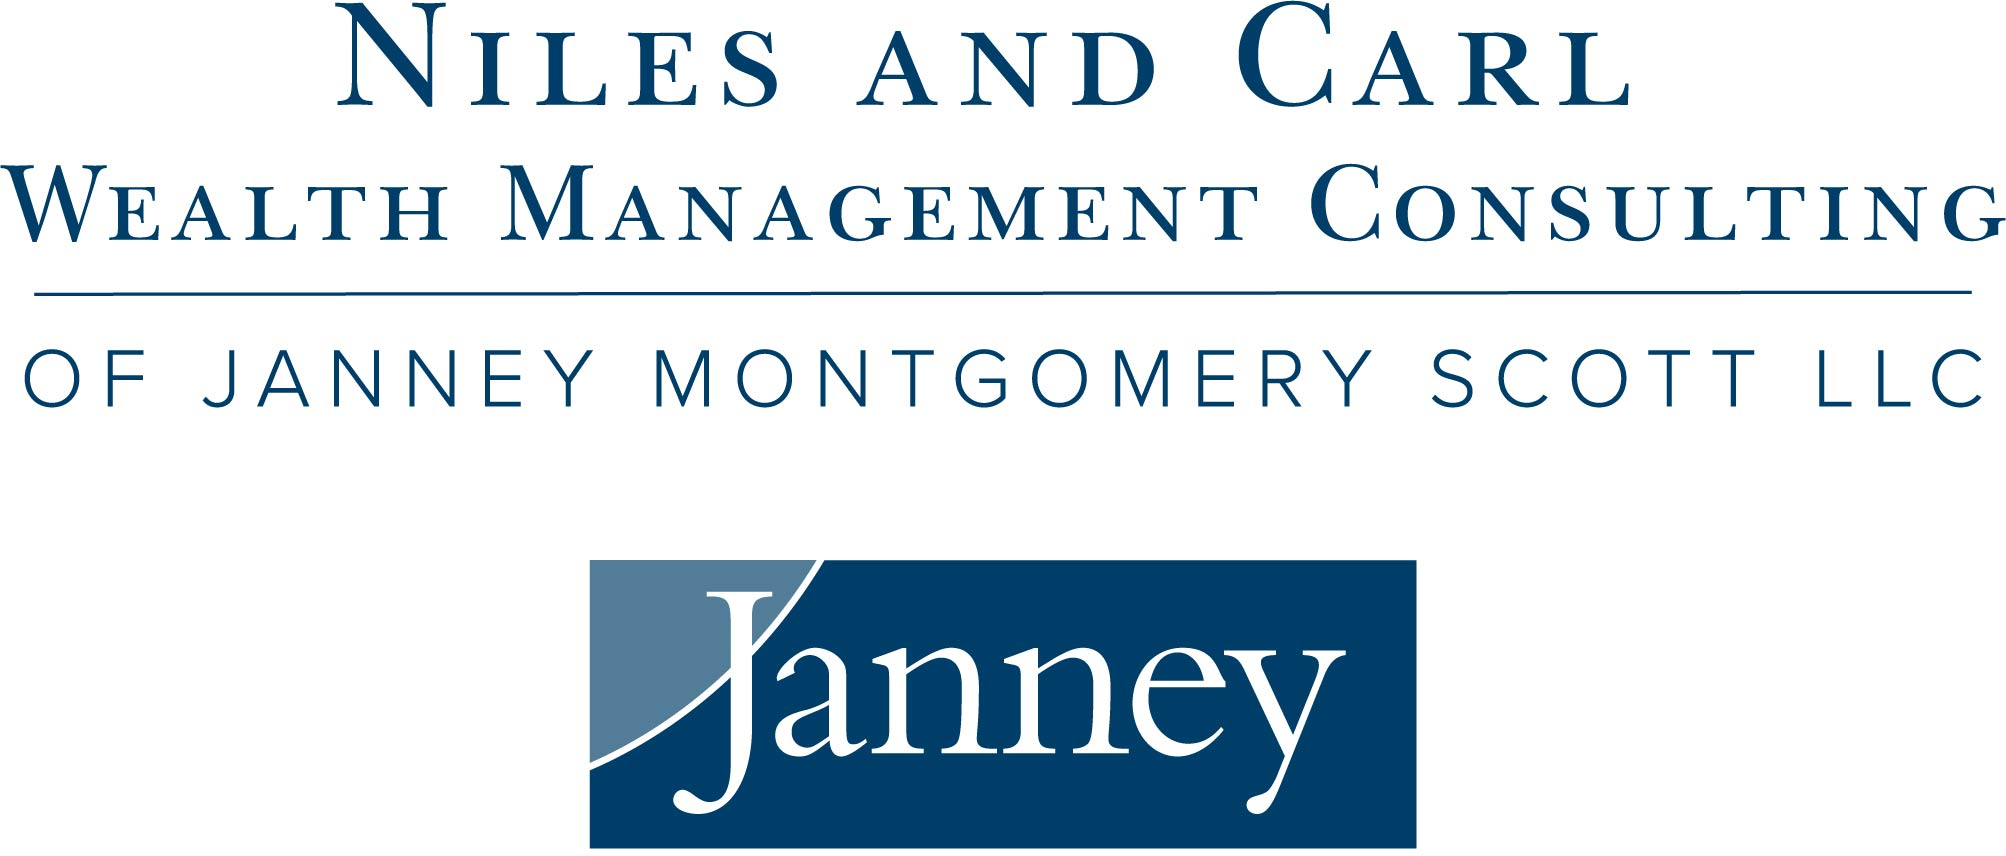 Niles Carl_Logo with Janney